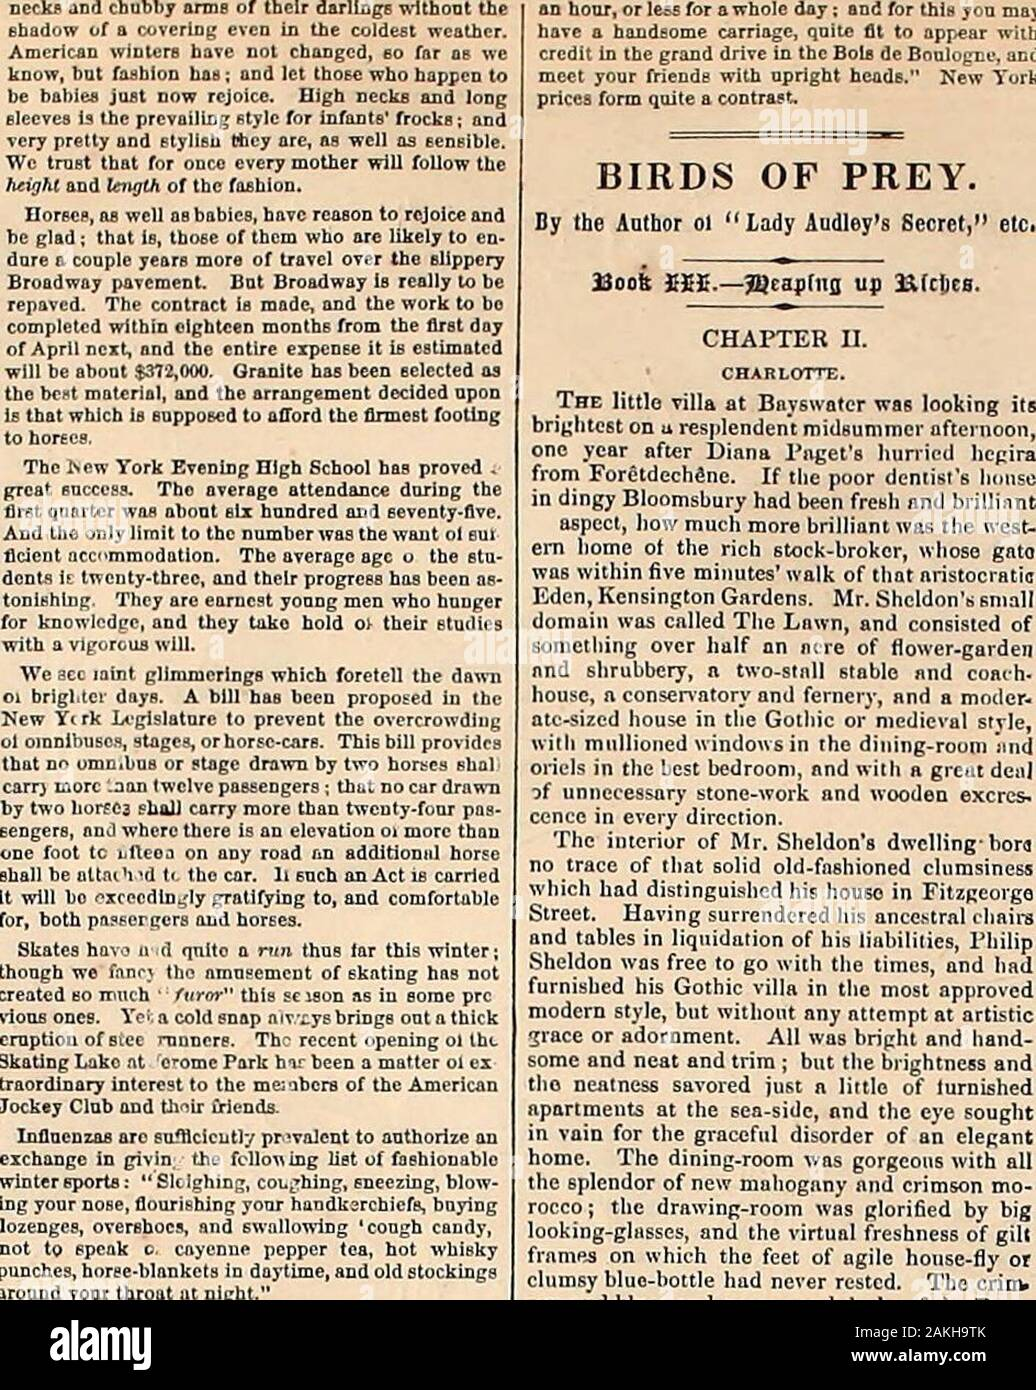 Harper's weekly . INT THE METROPOLTS.- cnED ux W. S. L. Jewett—[See Page 51.] riAi;ii:j;s wf.f.u.y. [January 26, 1867. THE COQUETTE OF AELON. ;?;,;:,: In Ihc projected comedy, he rflic coquette, finding him bo ? ?nr-Hy, UUrJjr had takei e apparition held a lighted ,.- lucky lbi.1 il «:r, ..f hlu] .V.nc..r ? il i-lli/ht c.Hi.L-ti ii<iw g( up Id MViiCir-I li.- mr-c/c.I twice. N.il In-ill^ :iUle to I lii.n.iru. .-:ir>. CBlasdlslill^ll^he.ll.ii.^.-lfiin.l.T th-.e trvih_- n 1 ^i*.-J I ;, n I ) 11DMK ,M> rni;j;i,; , ?vhich she ventures are uncomfortably crowd-. -lil..iii] ->!>.> Stock Photo